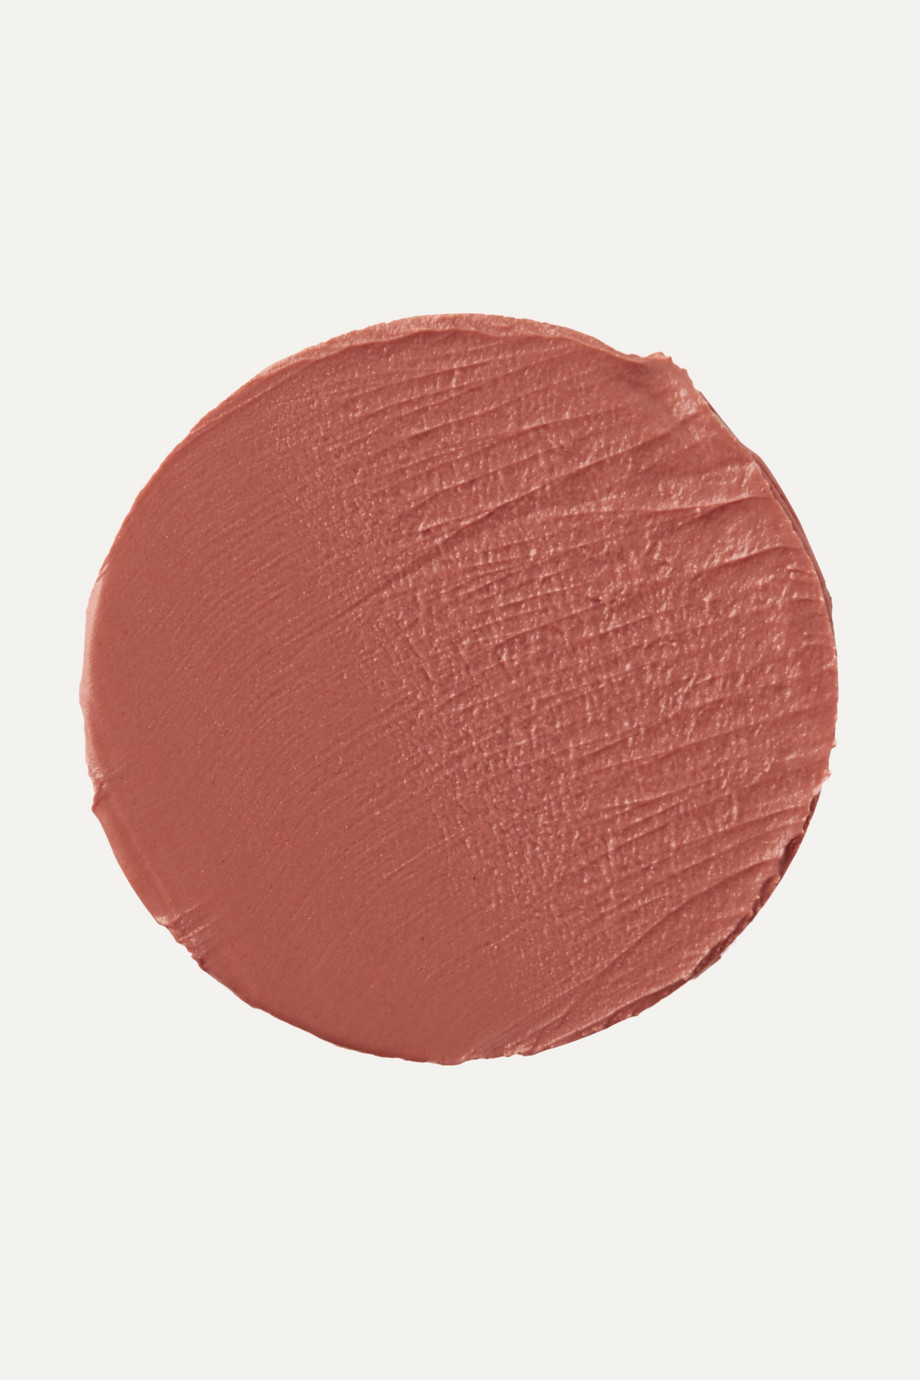 Lipstick Queen Nothing But The Nudes Lipstick - Blooming Blush